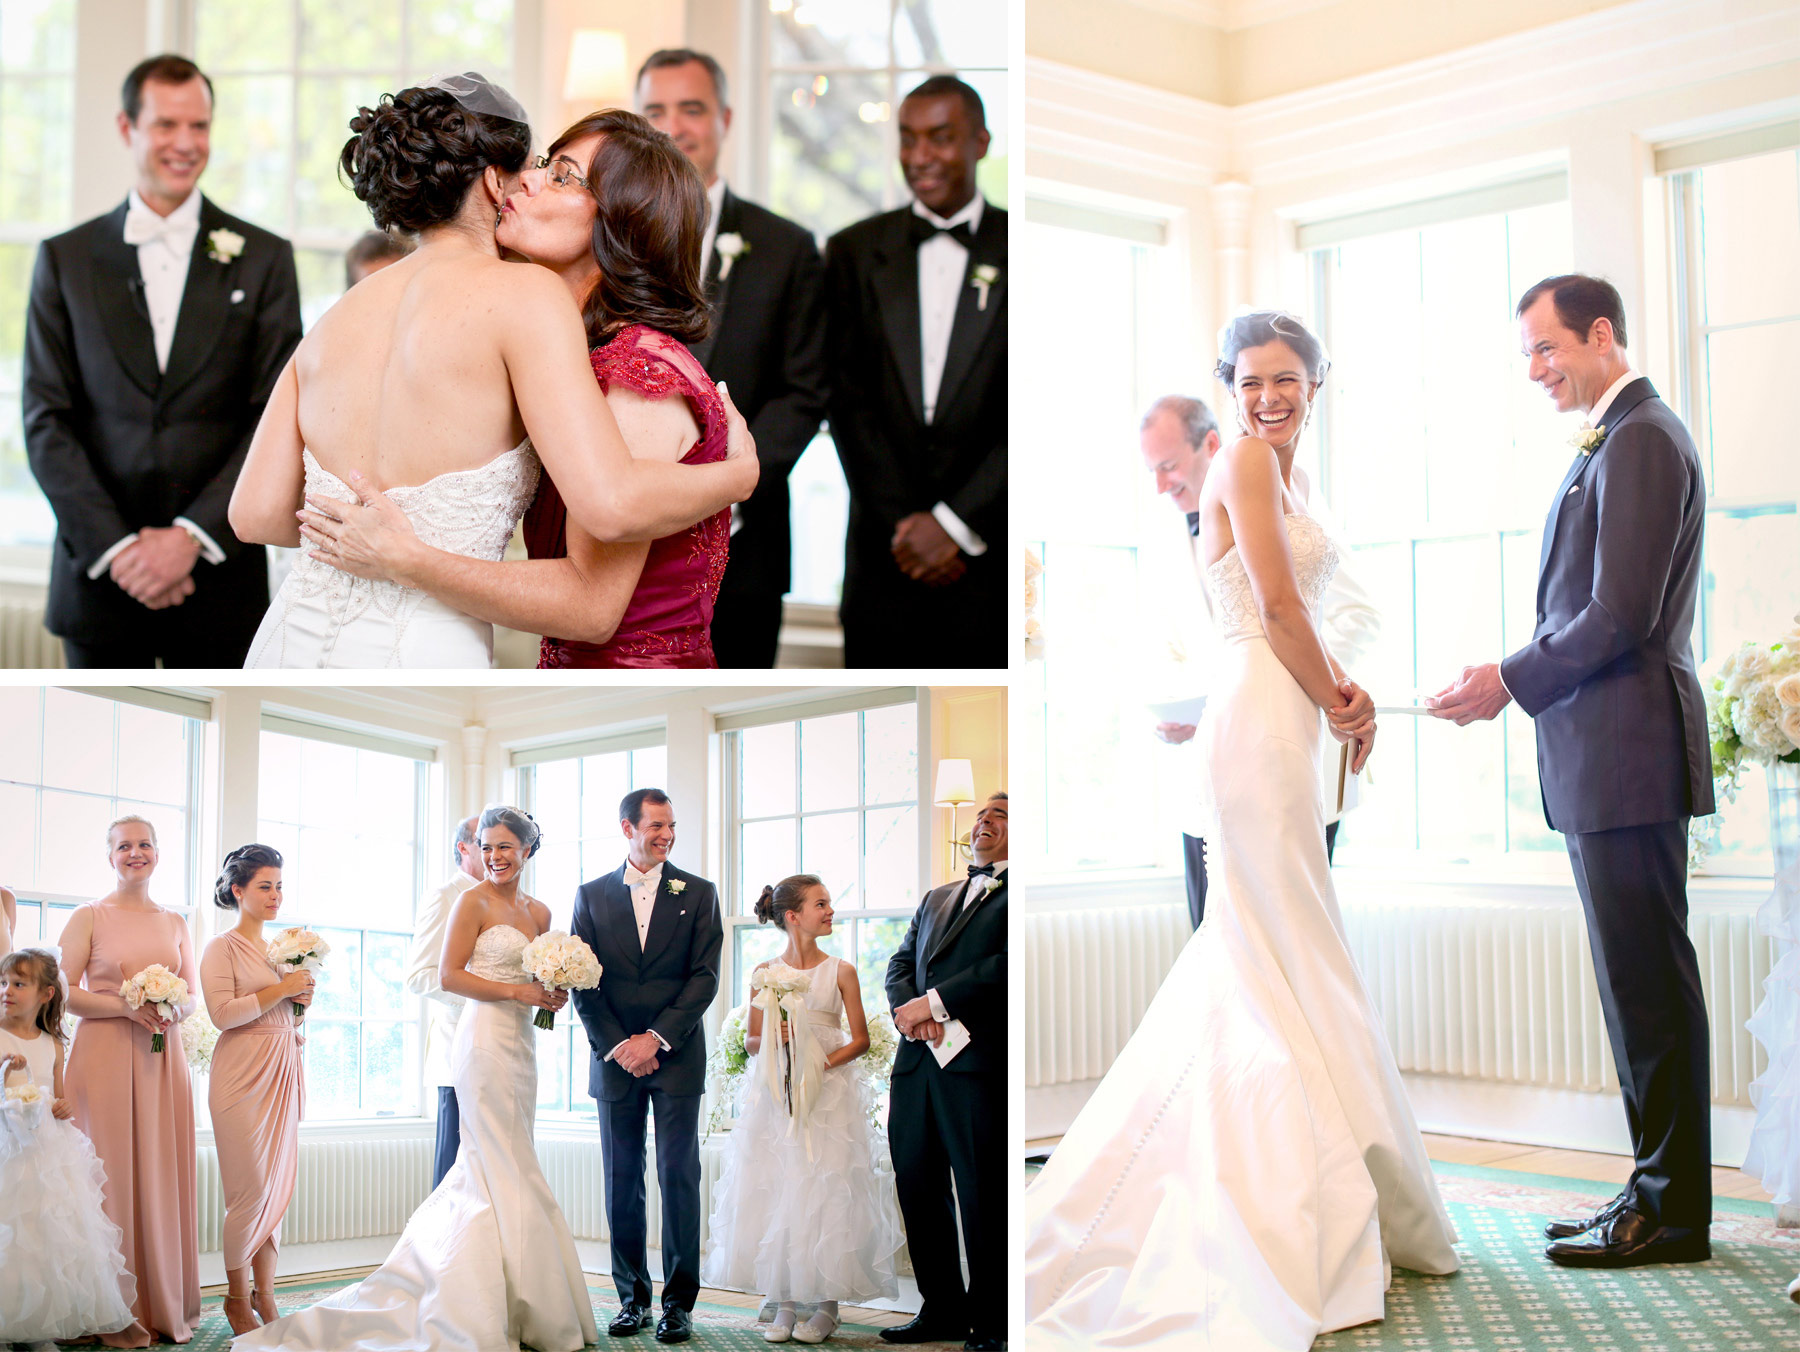 08-Minneapolis-Minnesota-Wedding-Photography-by-Vick-Photography-at-Minikahda-Country-Club-Ceremony-Leticia-&-Jay.jpg